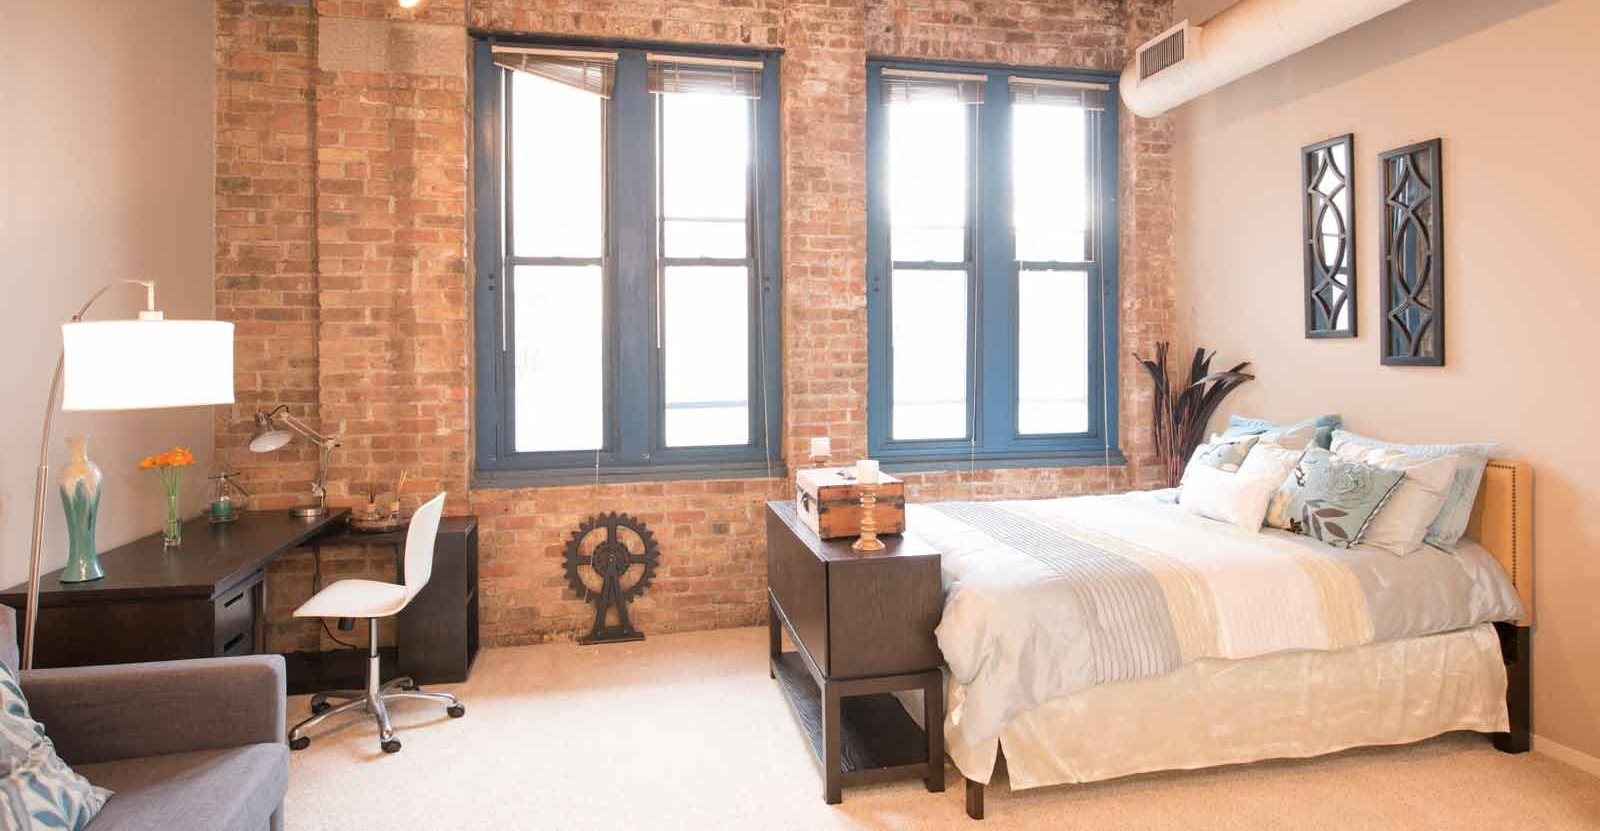 spacious bedrooms with high ceilings | Cobbler Square Lofts Chicago IL